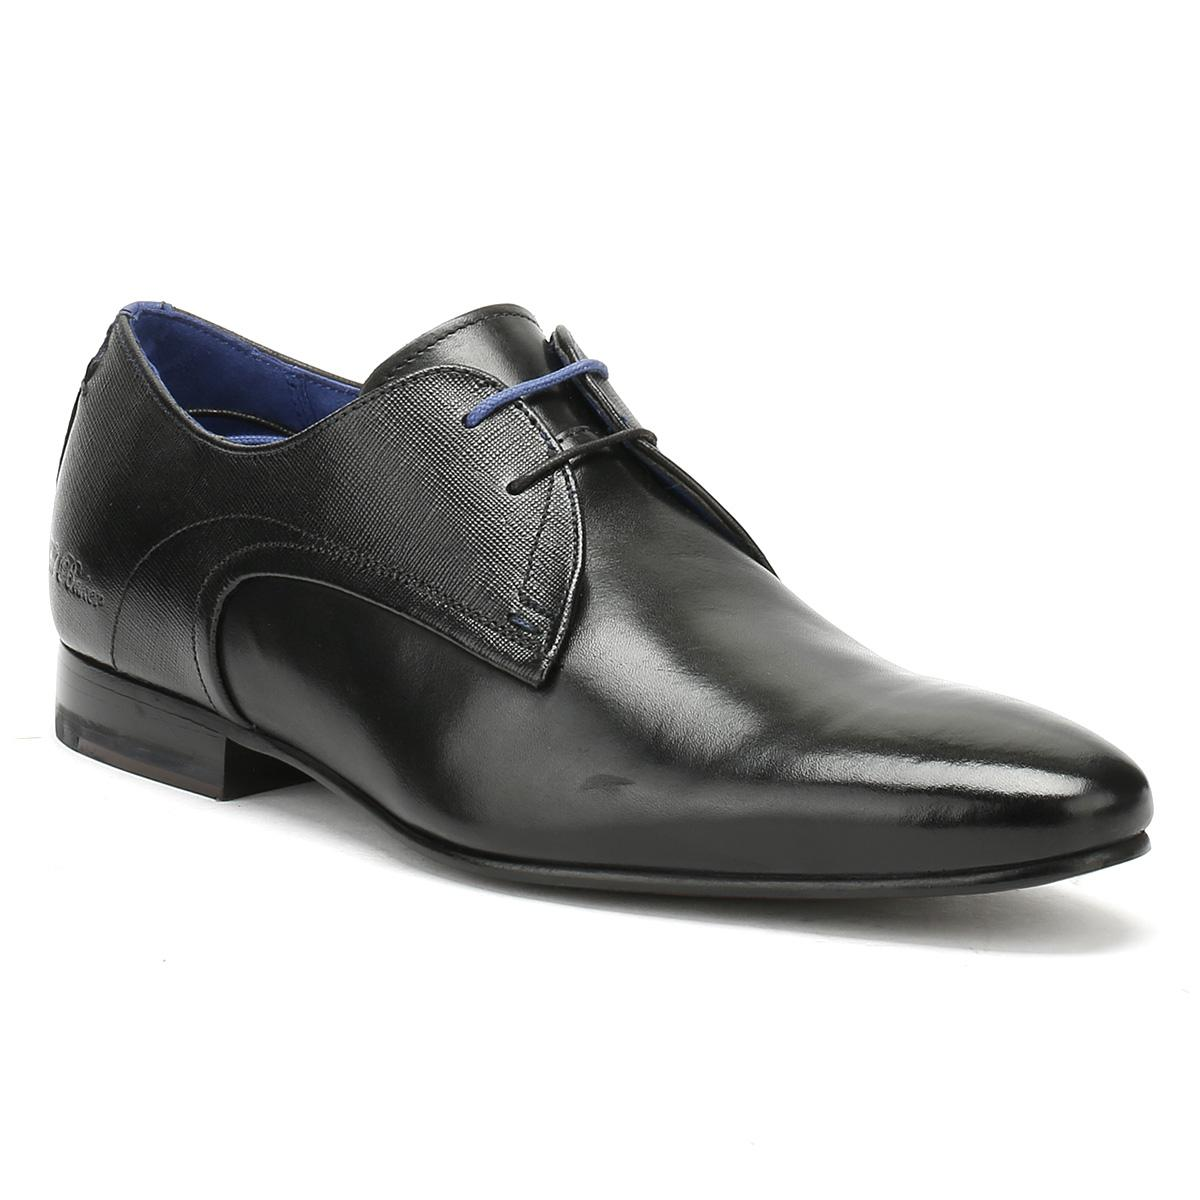 75a68e123baa12 Lyst - Ted Baker Mens Black Leather Peair Shoes in Black for Men